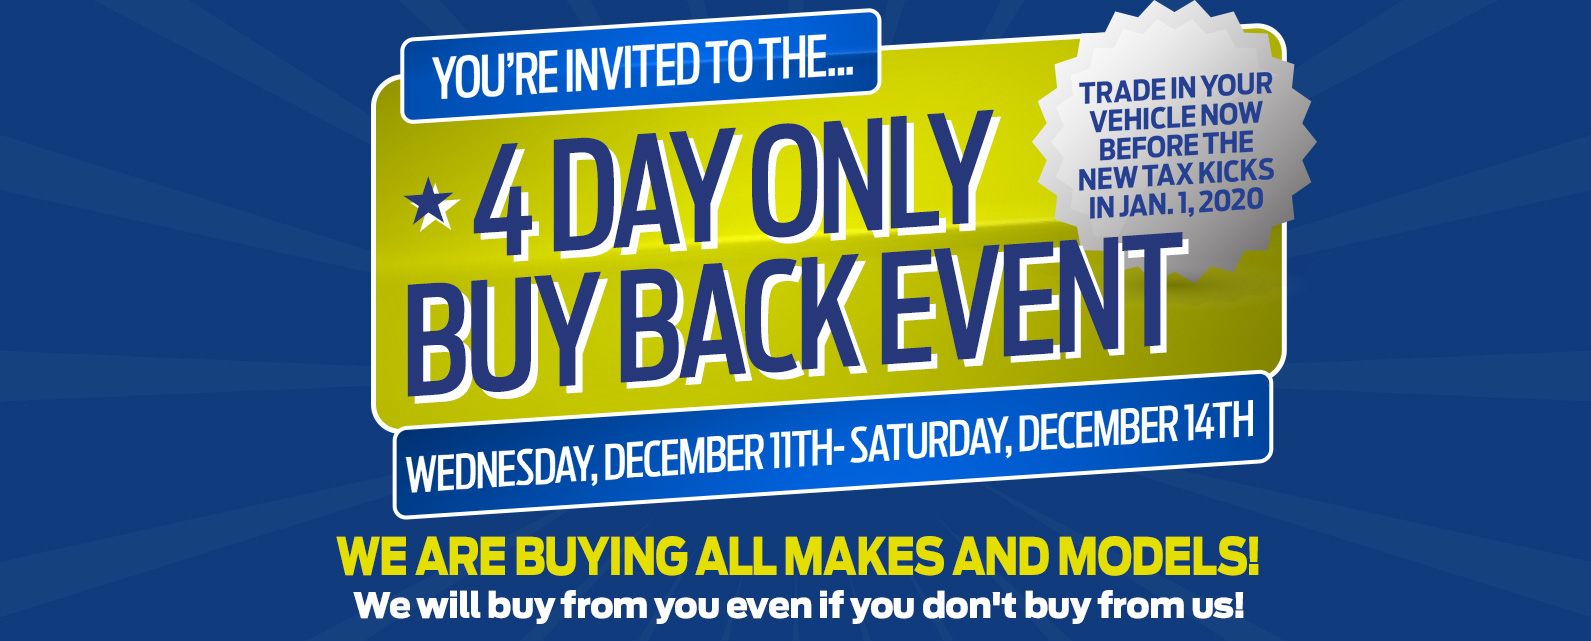 4 Day Only Buy Back Event